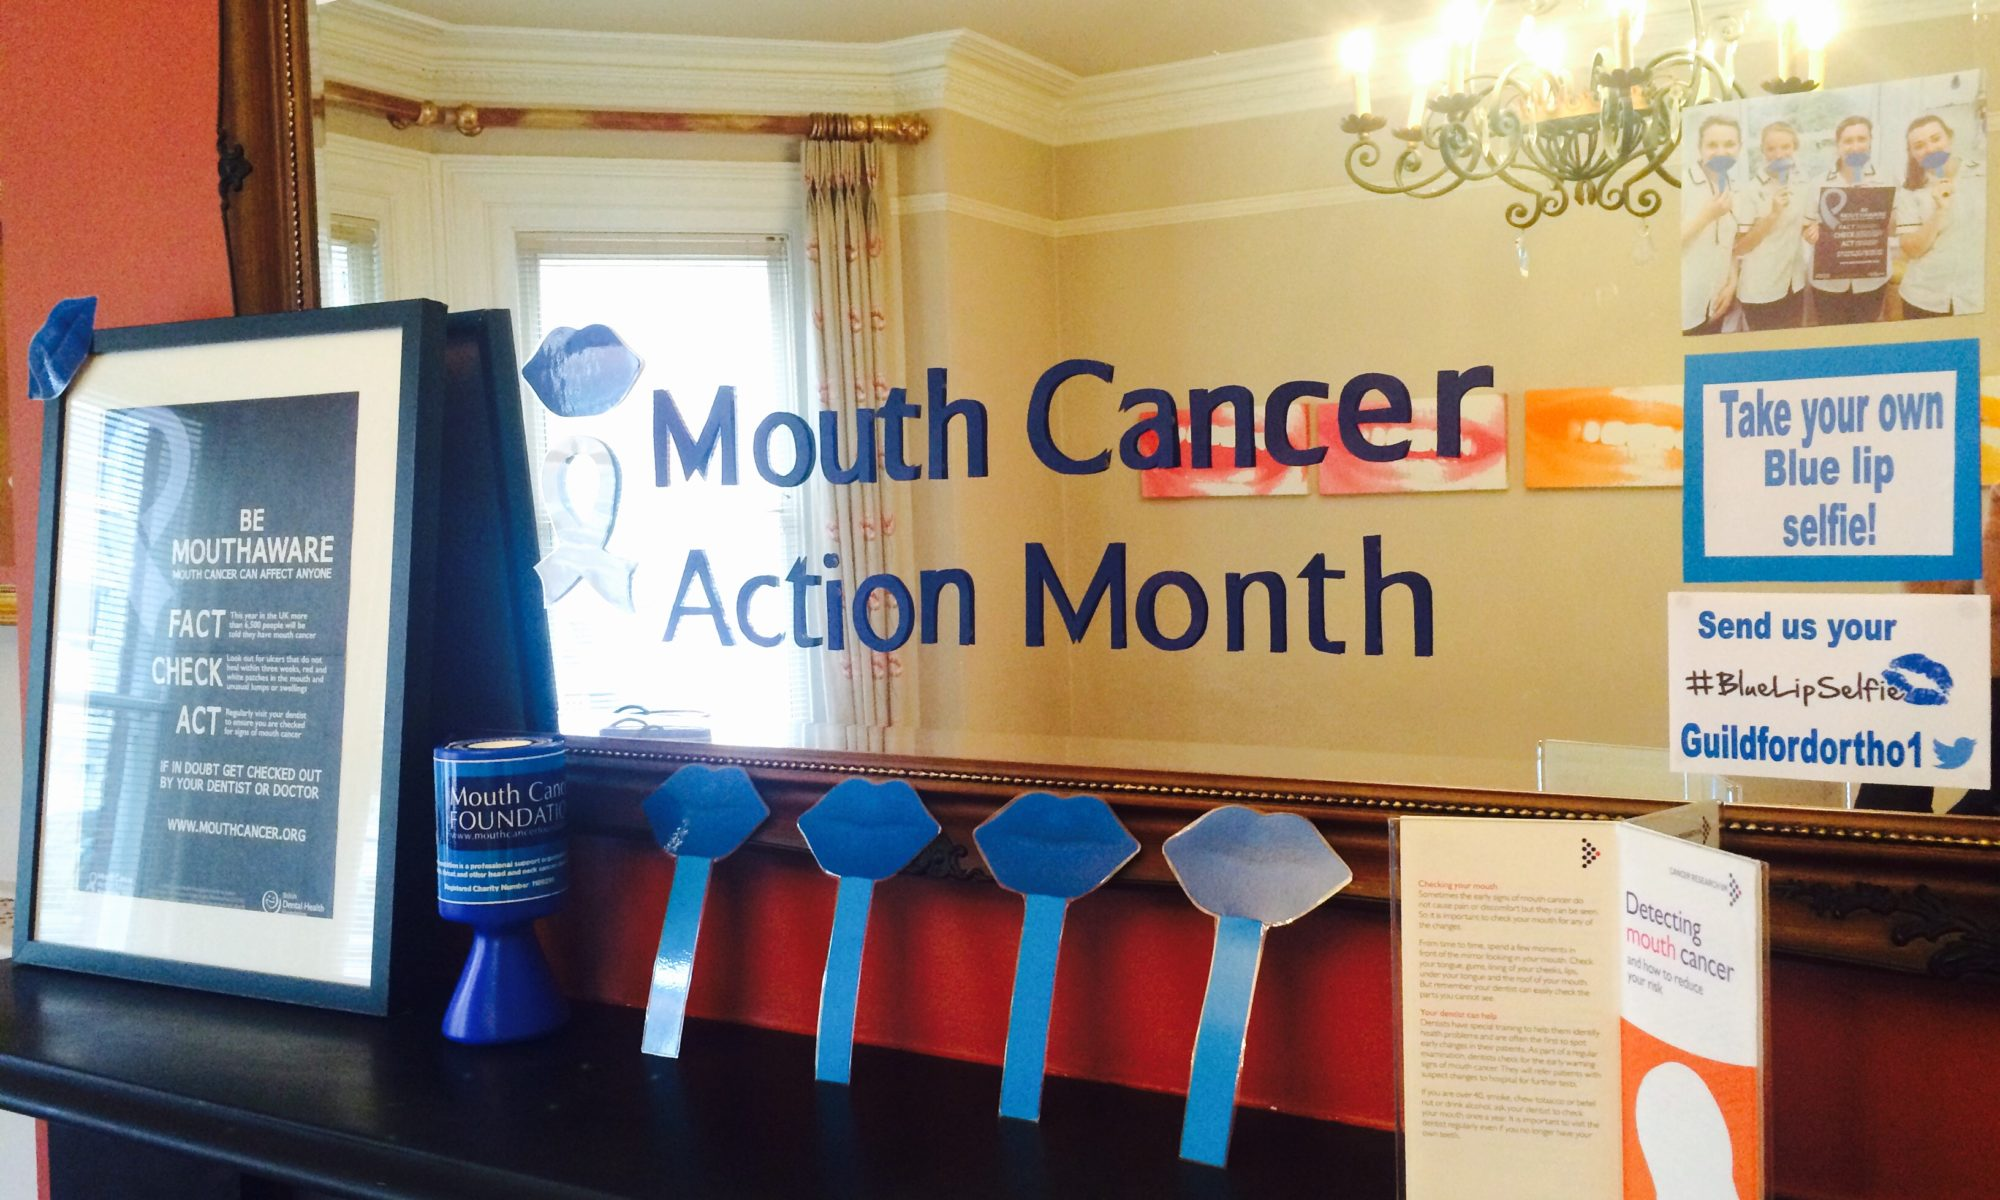 Help support Mouth Cancer Action Month